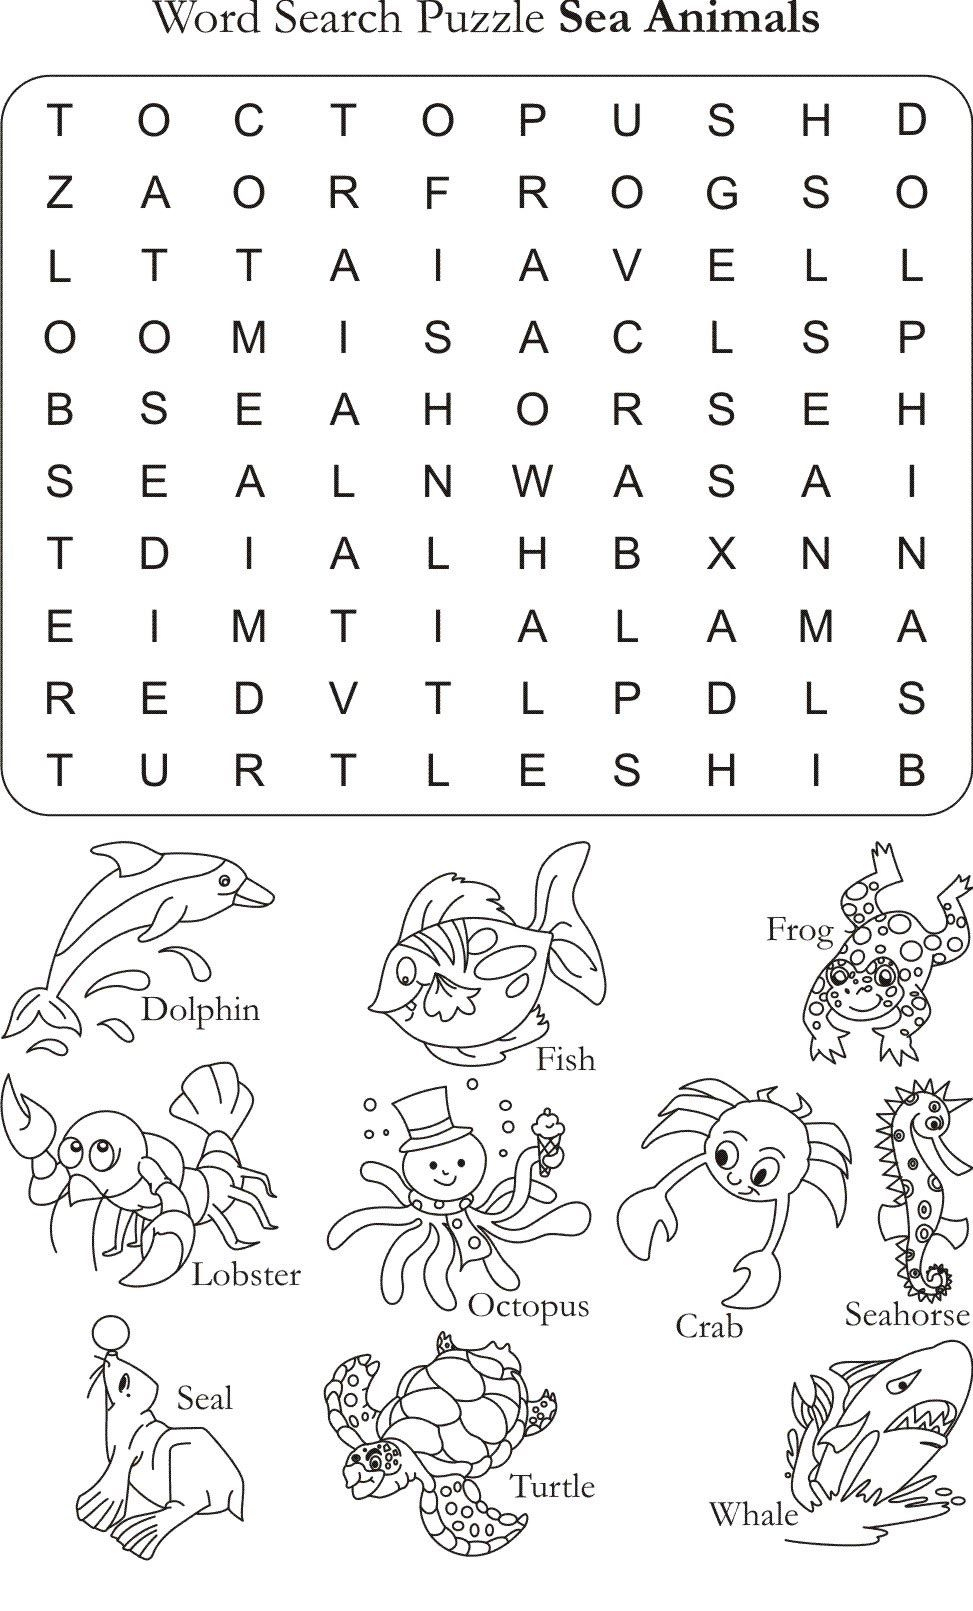 Word Search Puzzle Sea Animals | English Worksheets For Kids